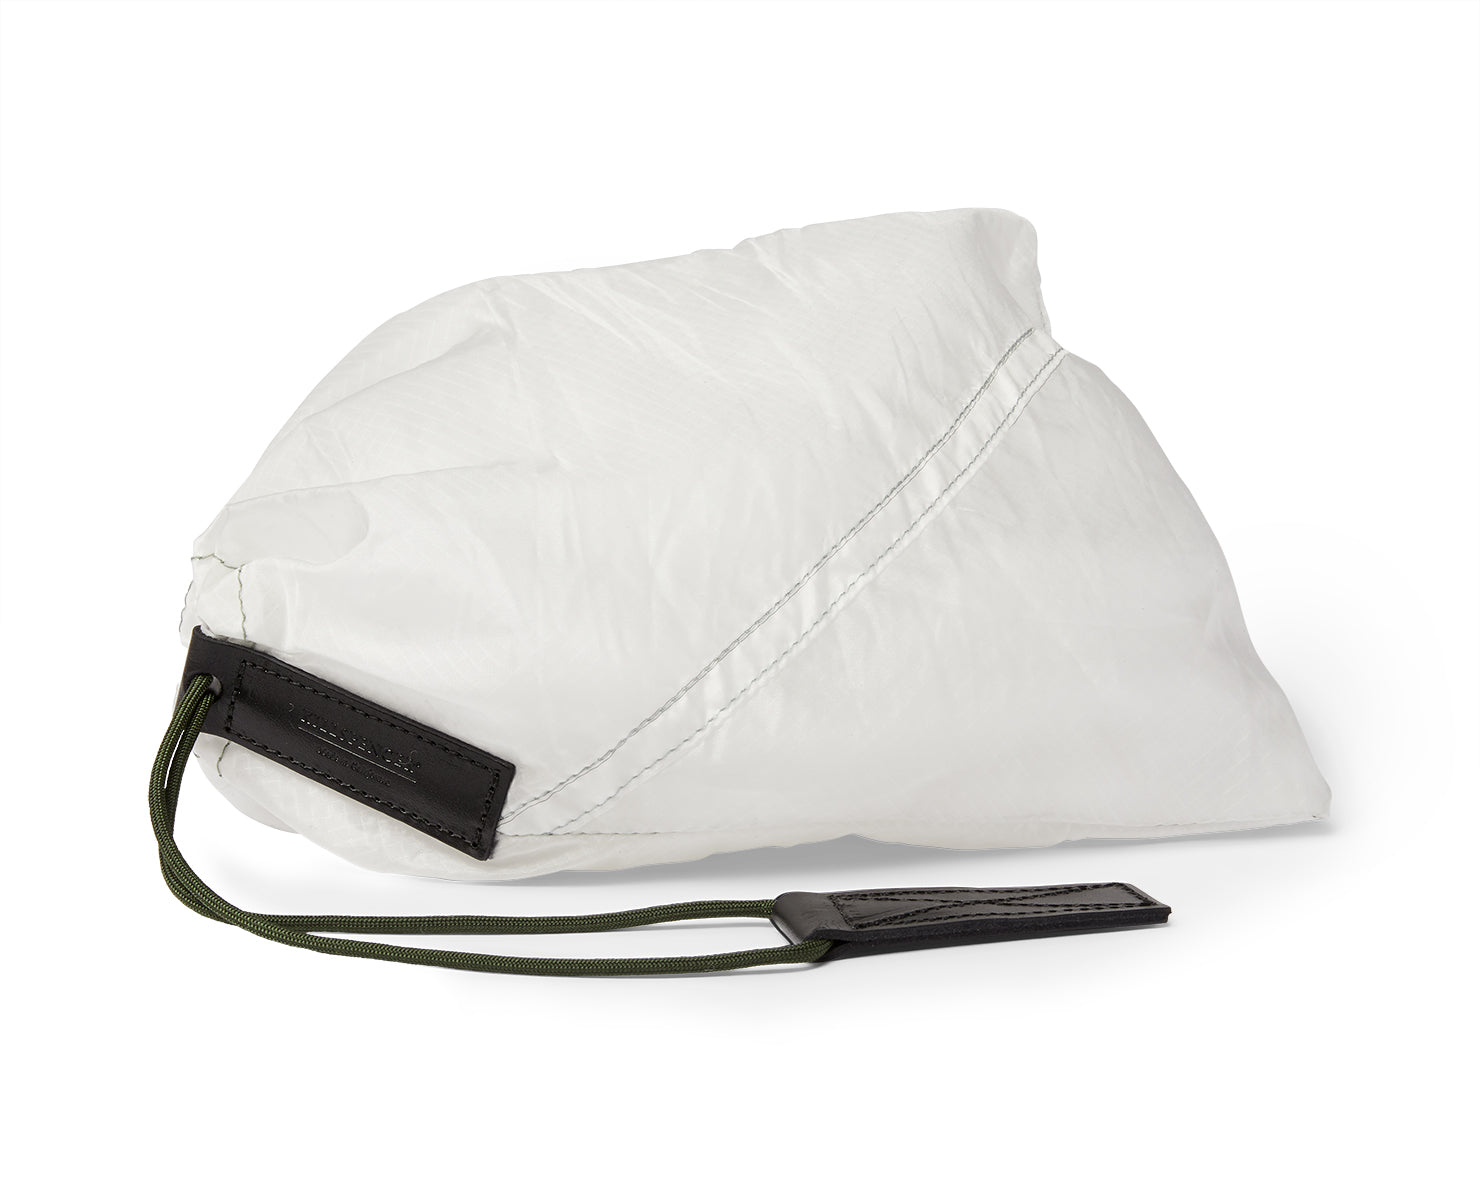 PARACHUTE BAG 2.0 - Large Accessory Bag | KILLSPENCER® - White Parachute